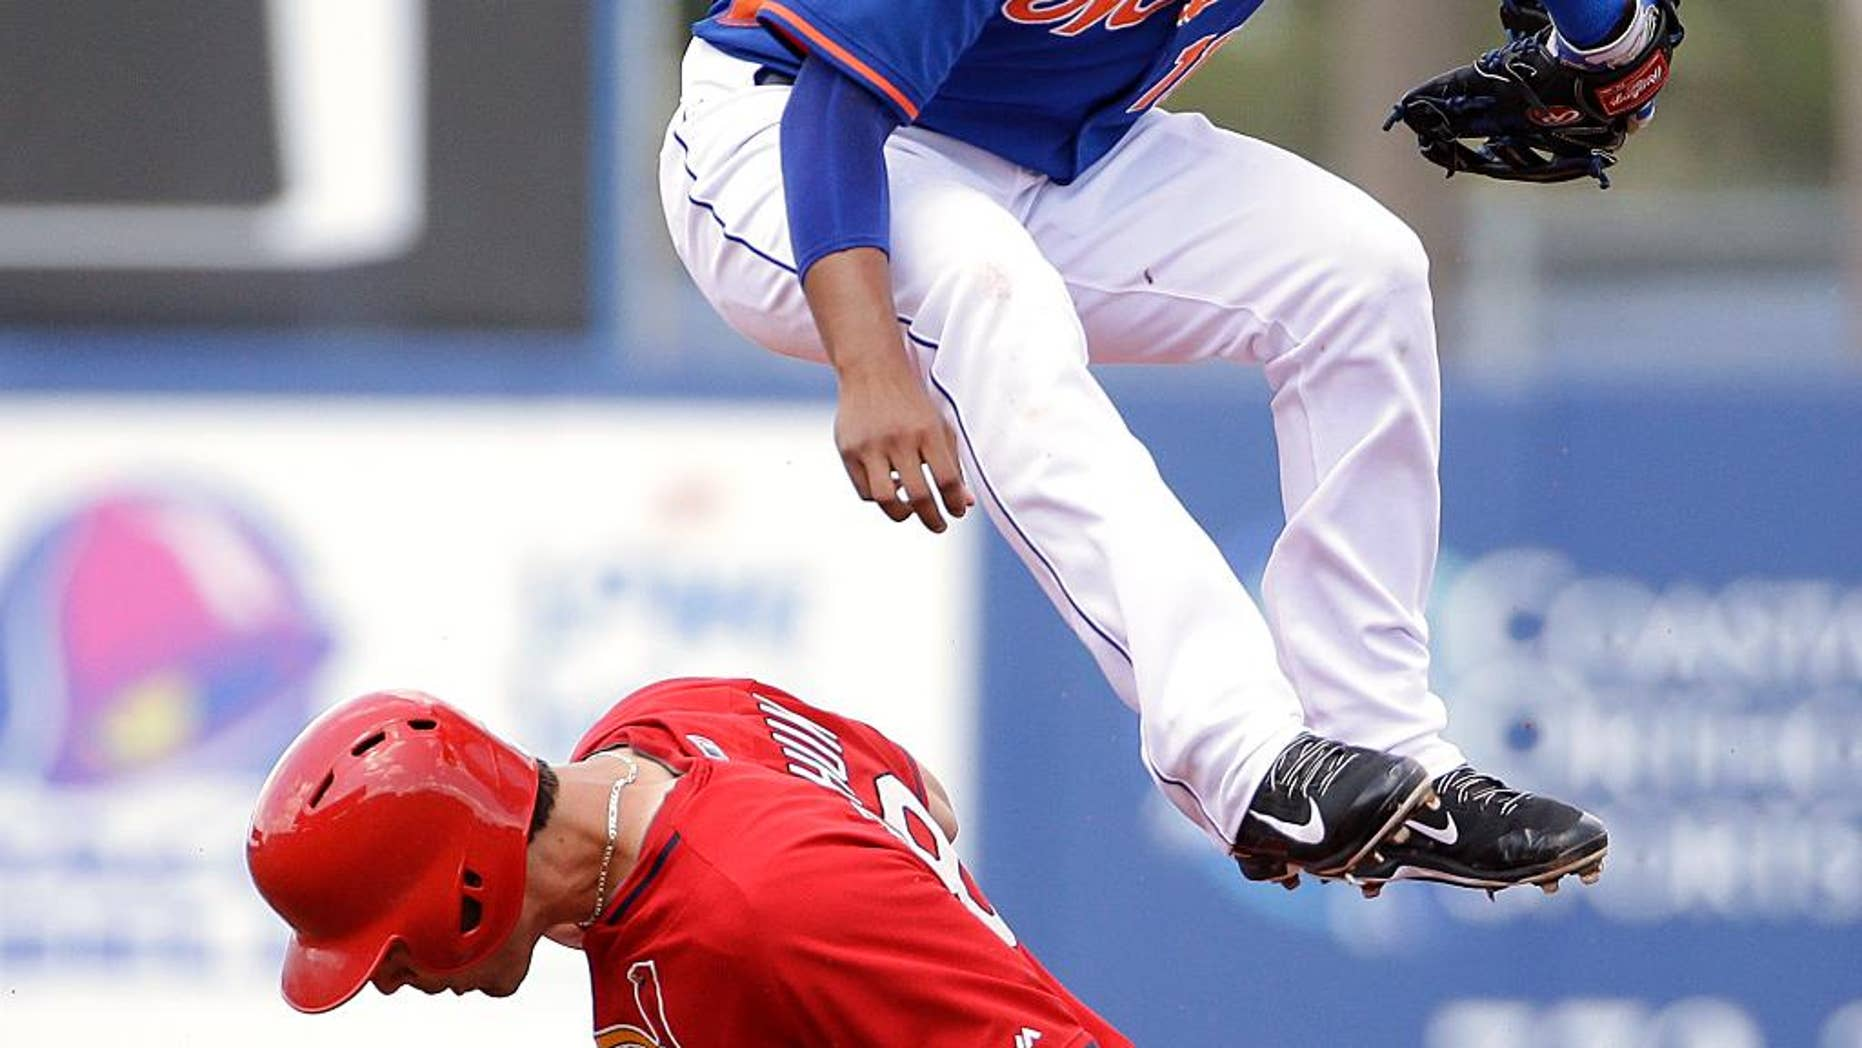 New York Mets shortstop Ruben Tejada, top, jumps over St. Louis Cardinals' Randal Grichuk after throwing to first base for a double play in the second inning of an exhibition spring training baseball game, Wednesday, March 12, 2014, in Port St. Lucie, Fla. (AP Photo/David Goldman)